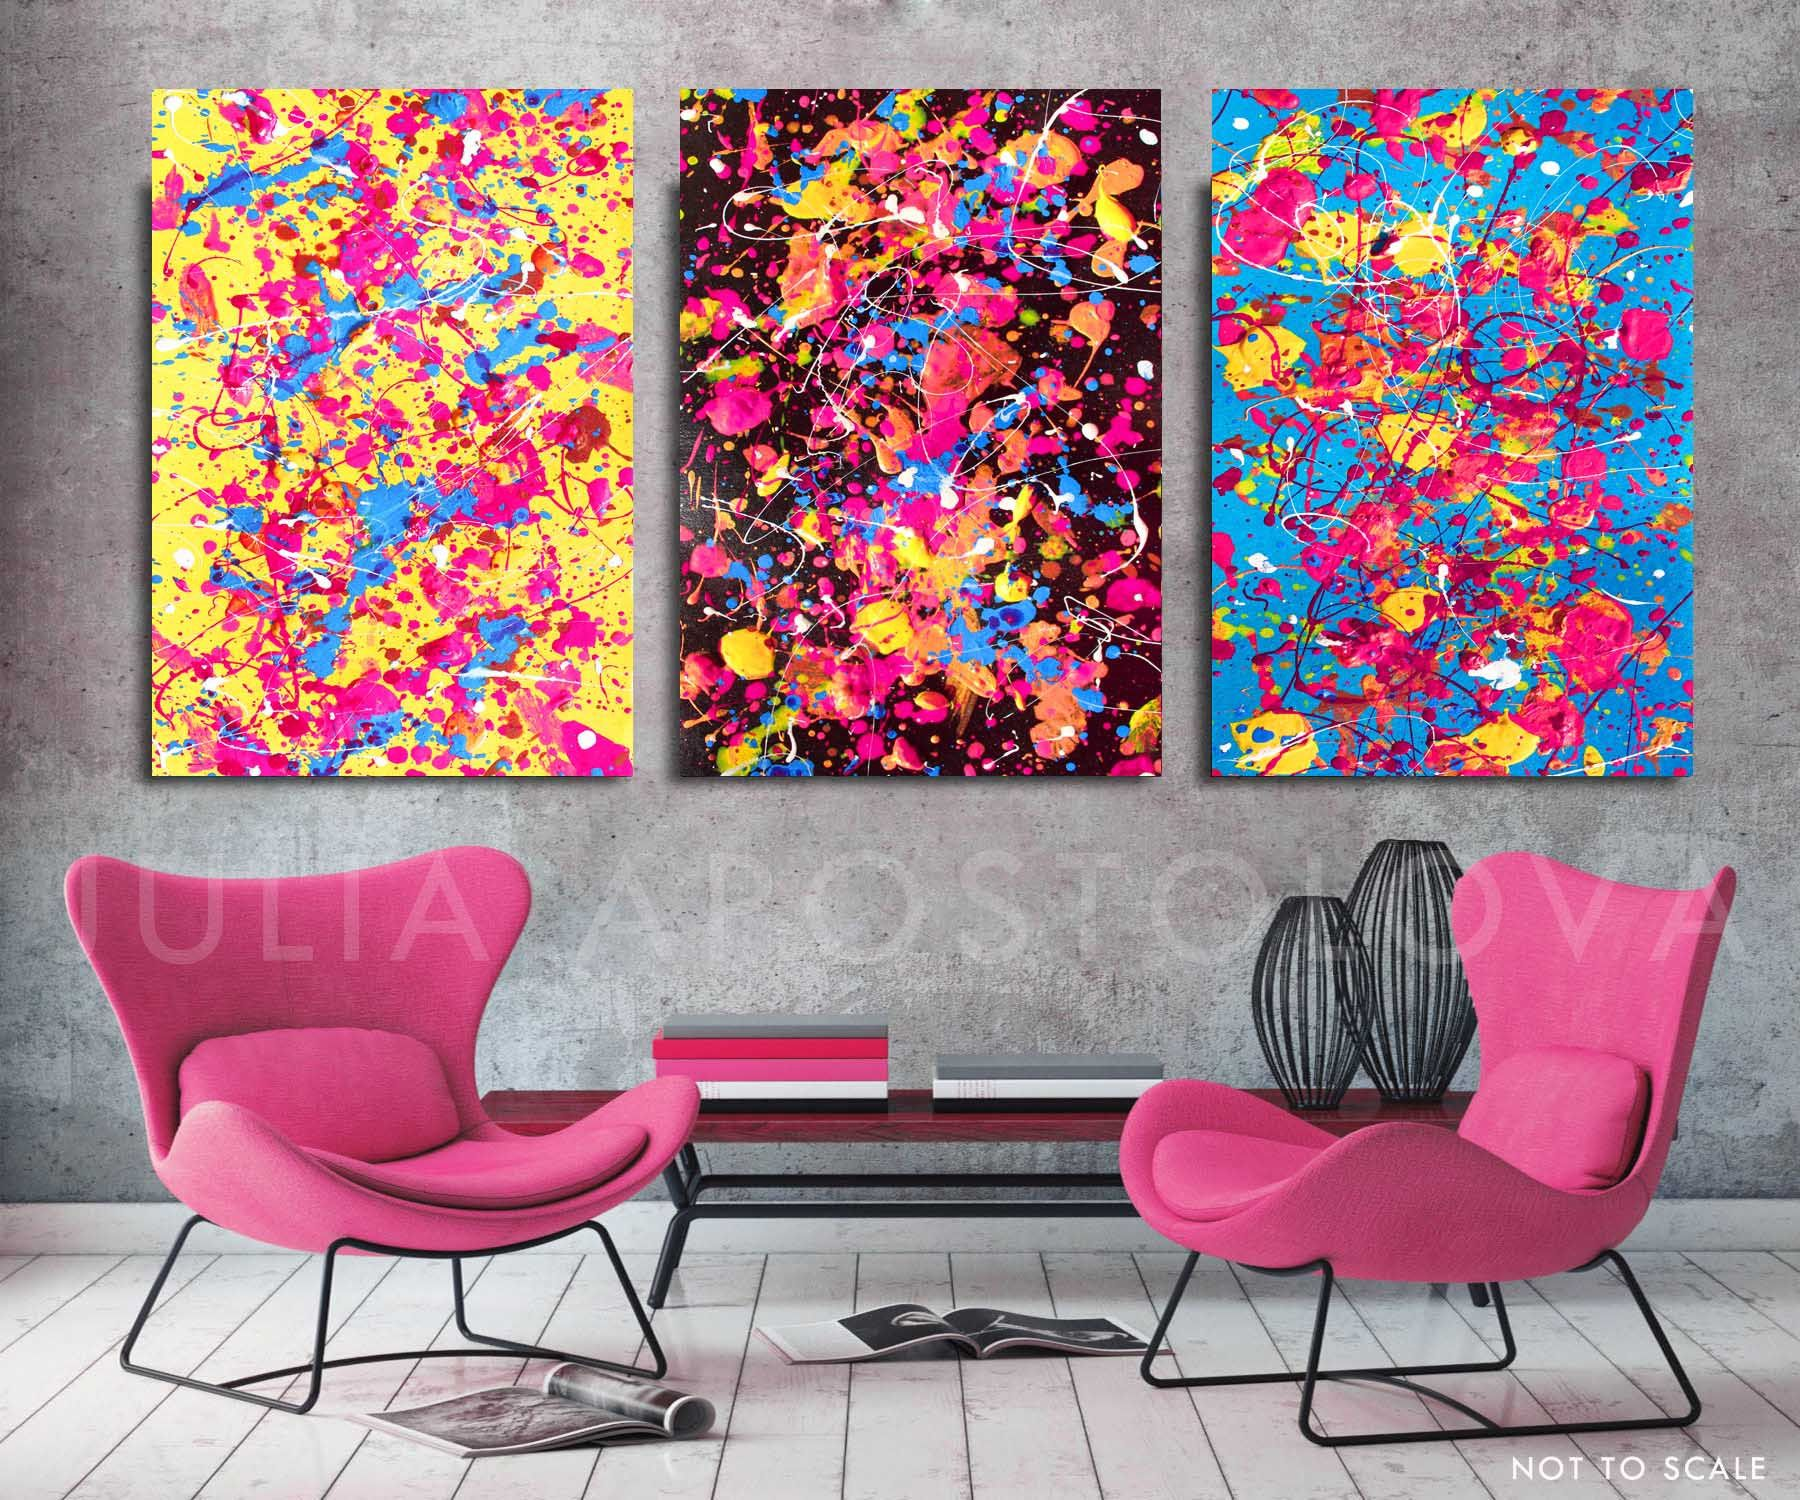 84inch Setof3 Prints Wallart Giclee On Canvas Colorful 80inch Painting Ruby Sky Watercolor Set 2 Huge Wall Art Colorful Paintings Abstract